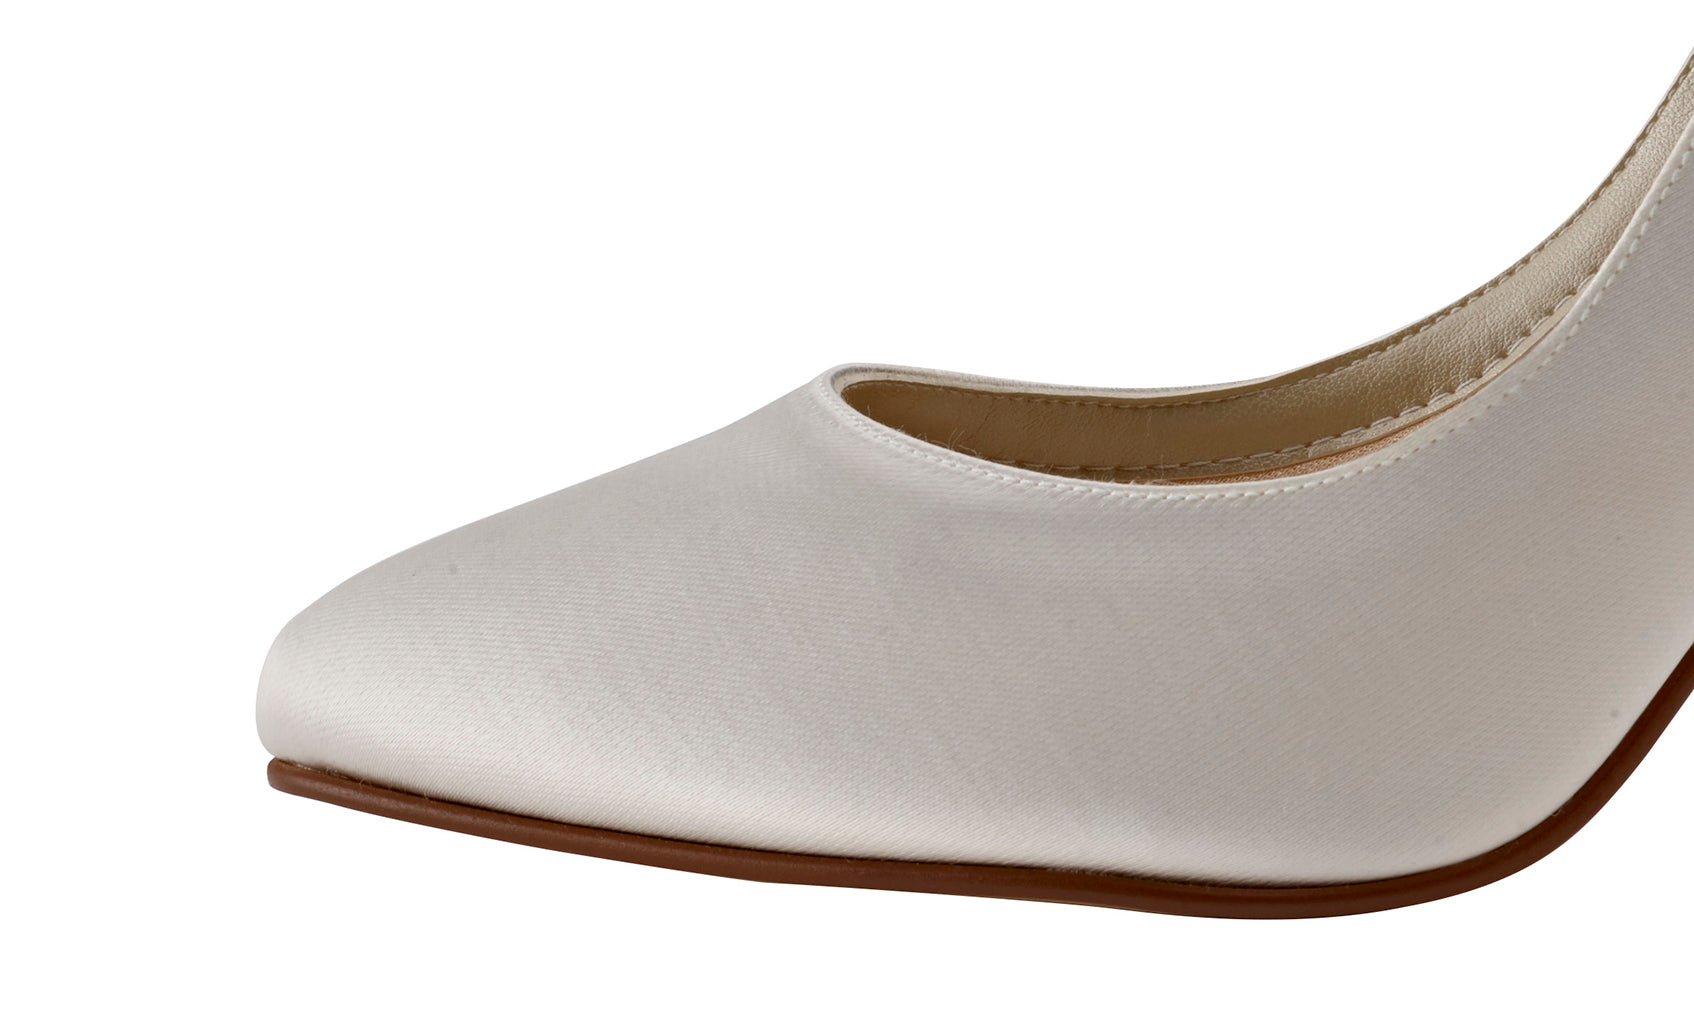 5112977f28ba ... Lillie bow detail ivory satin shoes by Rainbow Club for Pink Daisy  Bridal ...